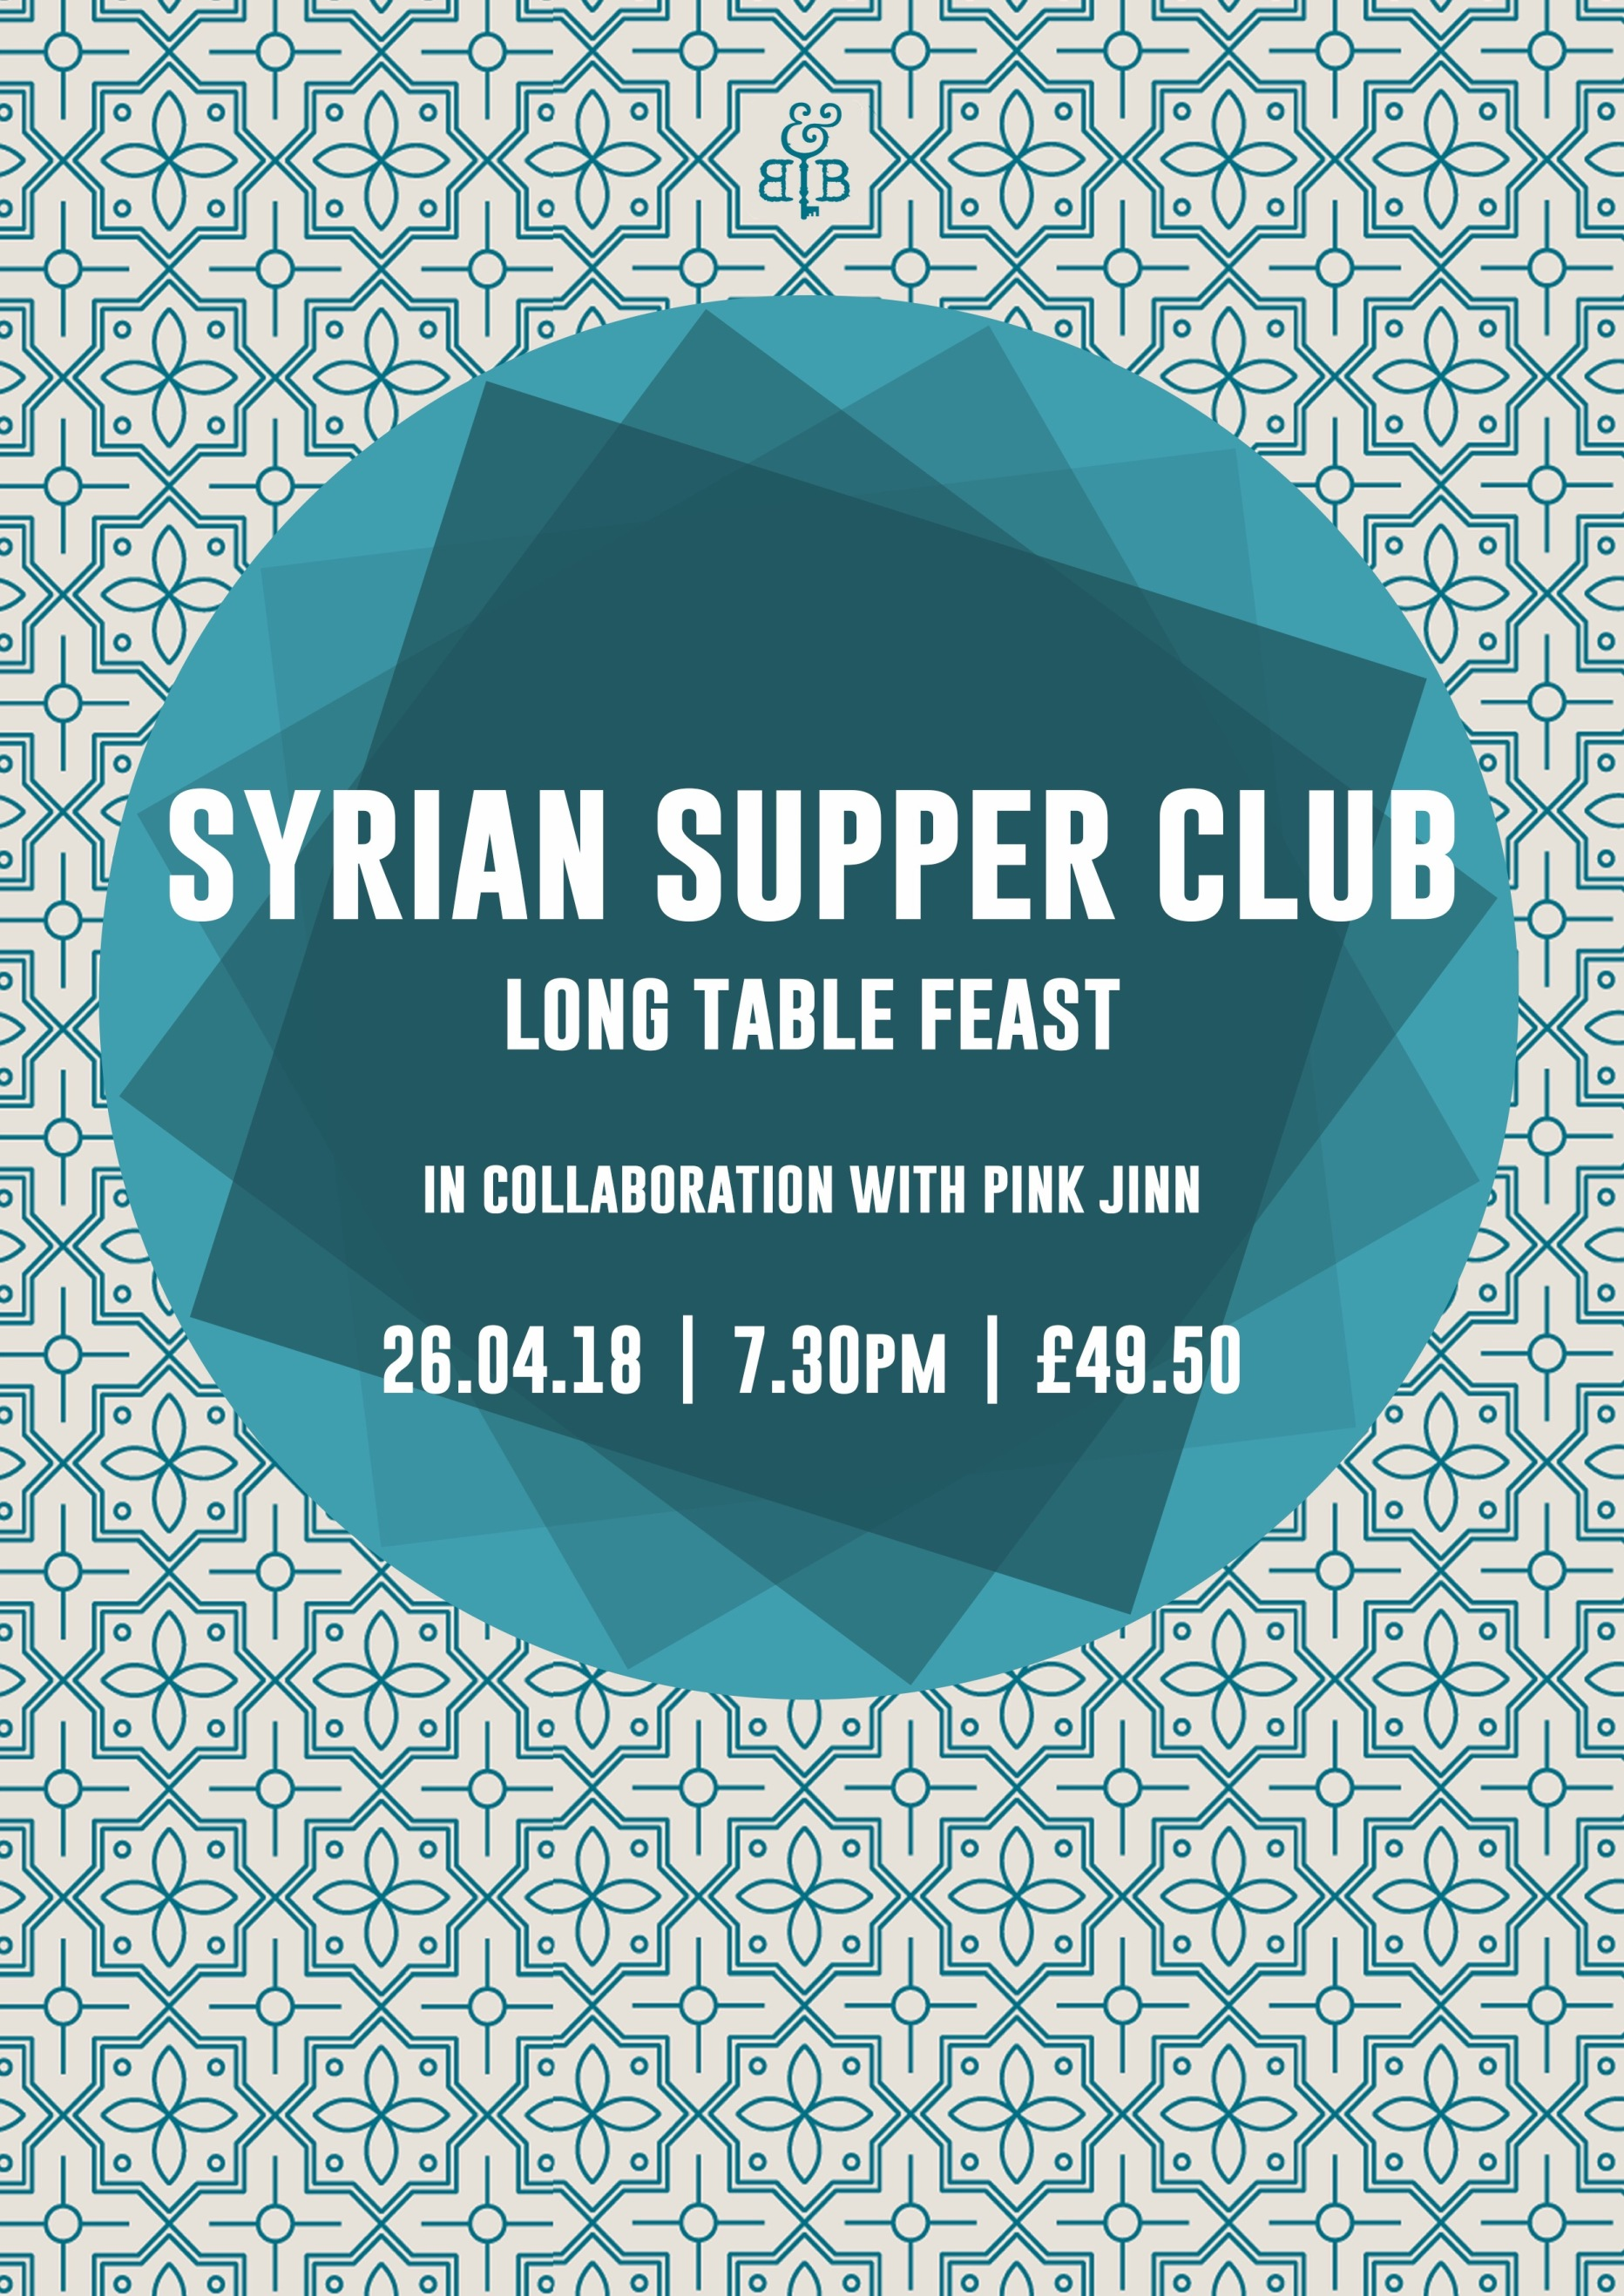 SYRIAN SUPPER CLUB.jpg